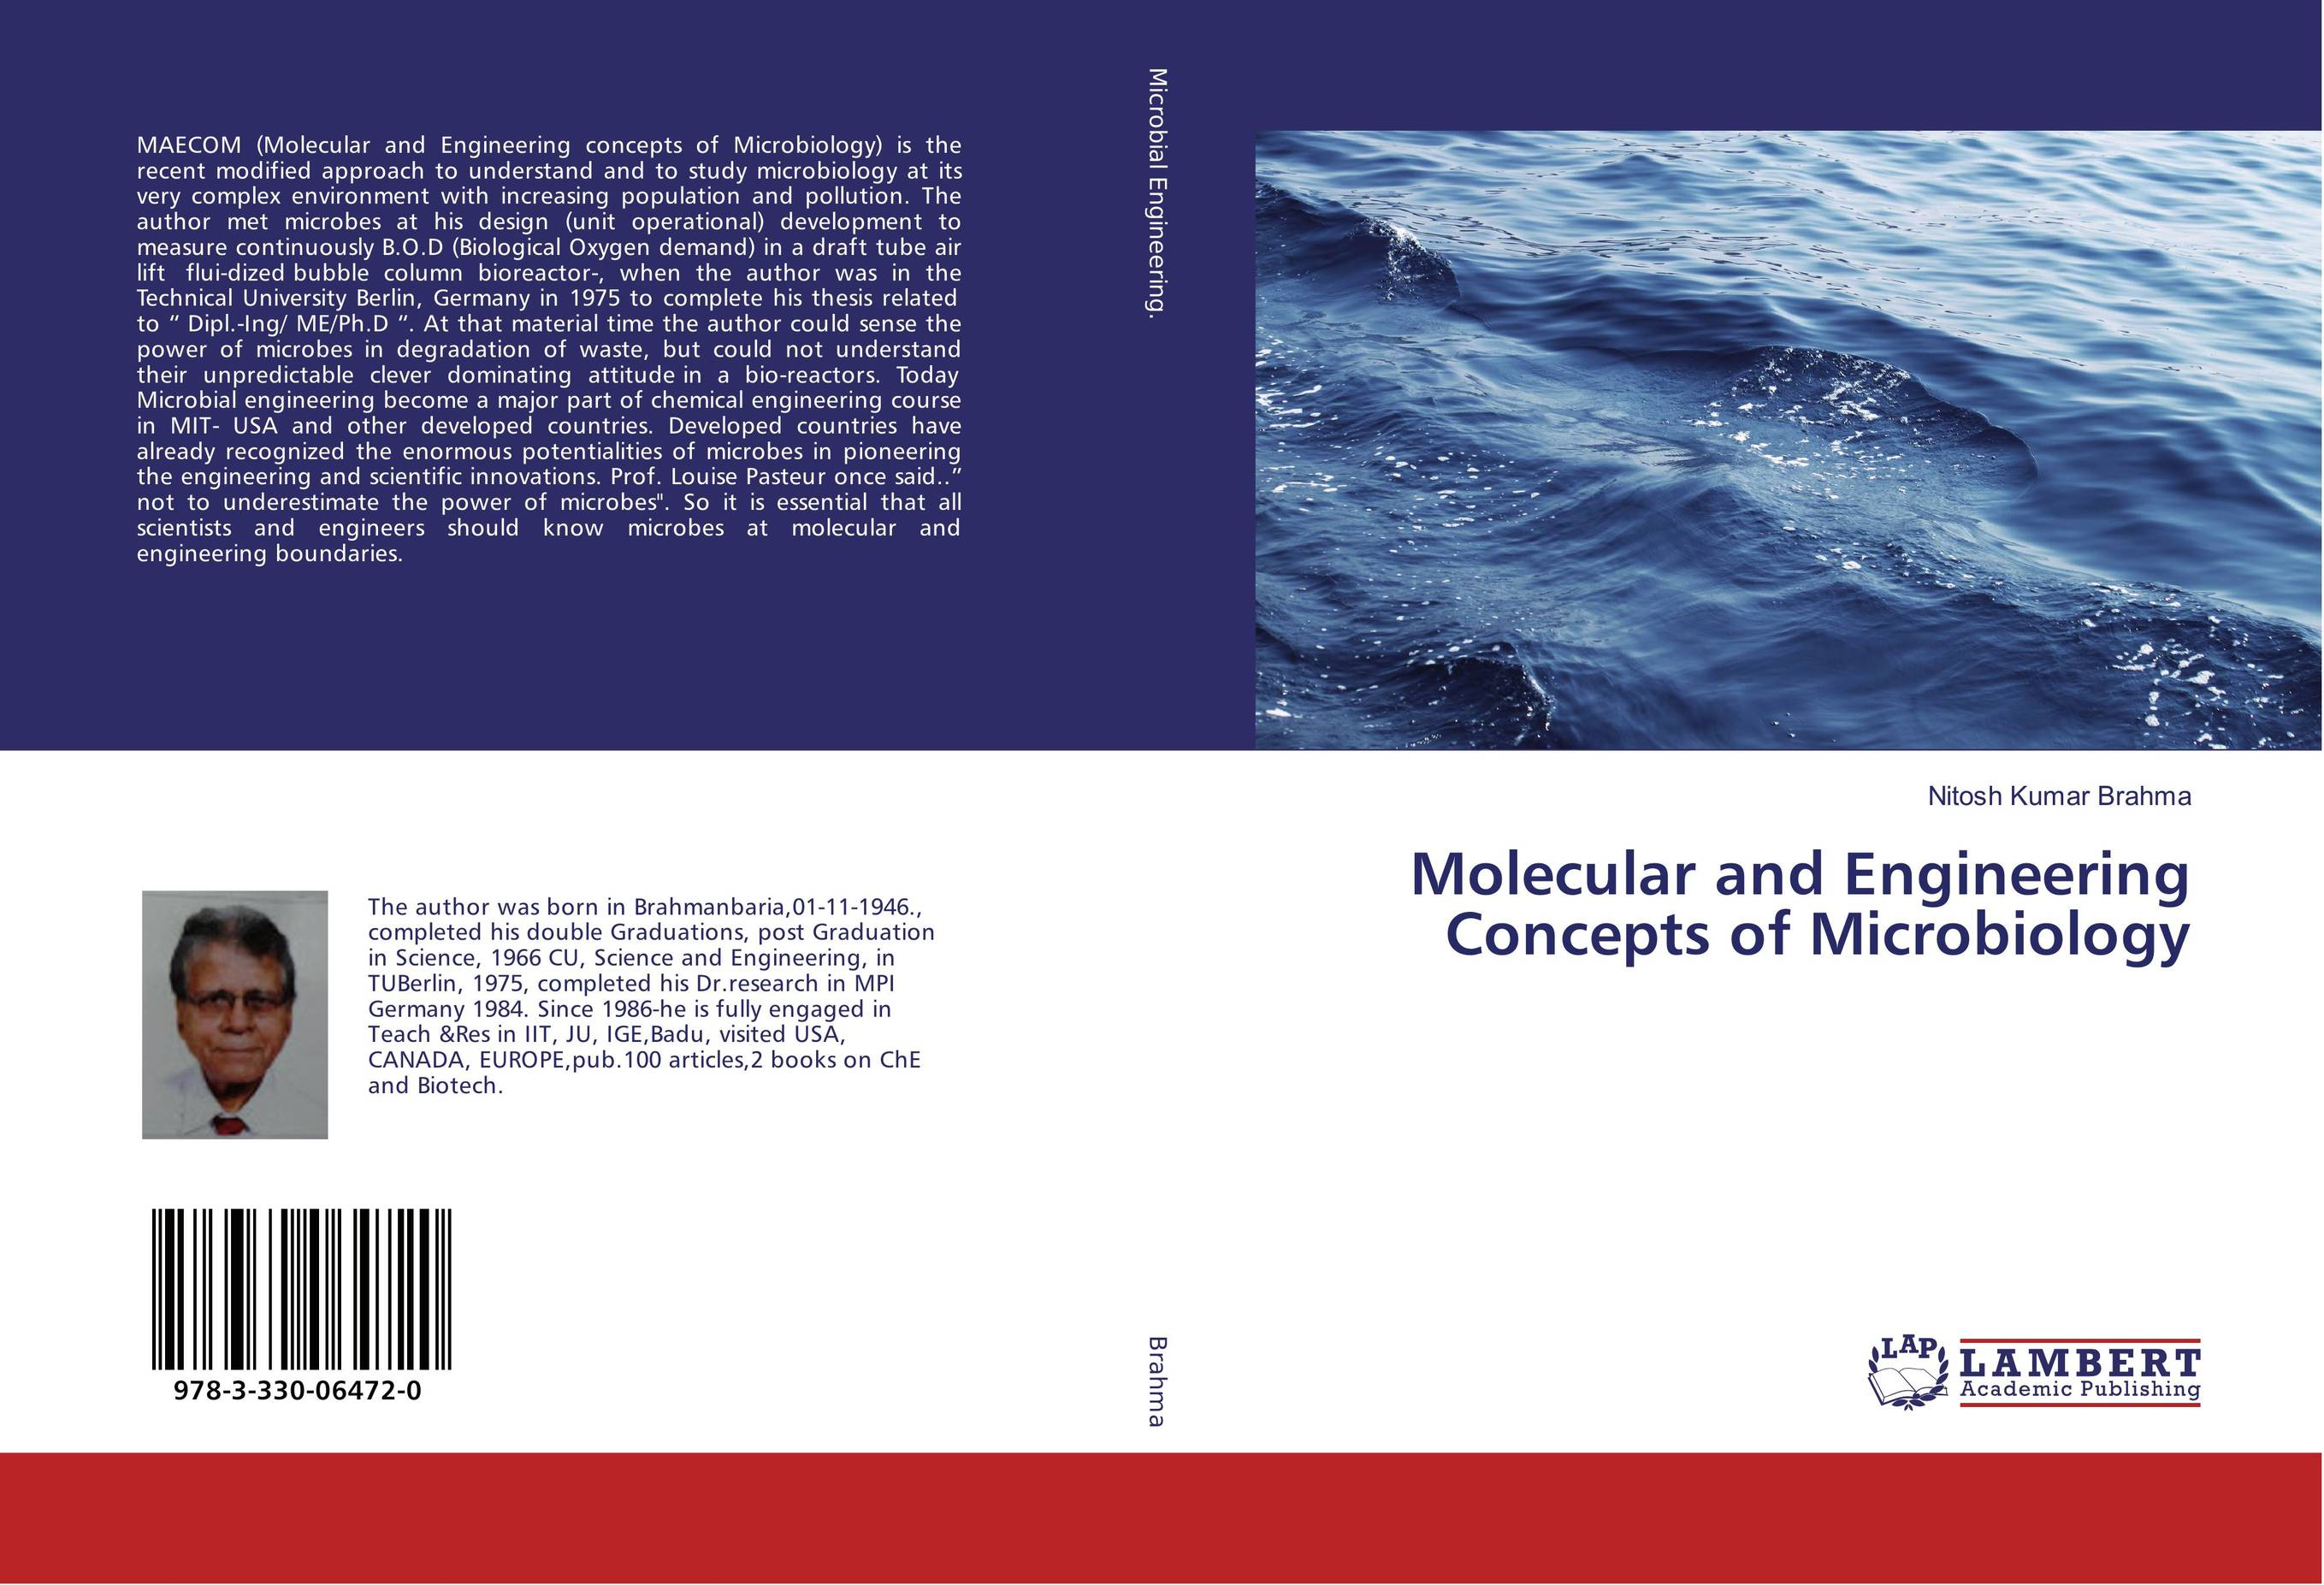 9783330064720 Molecular and Engineering Concepts of Microbiology Nitosh Kumar